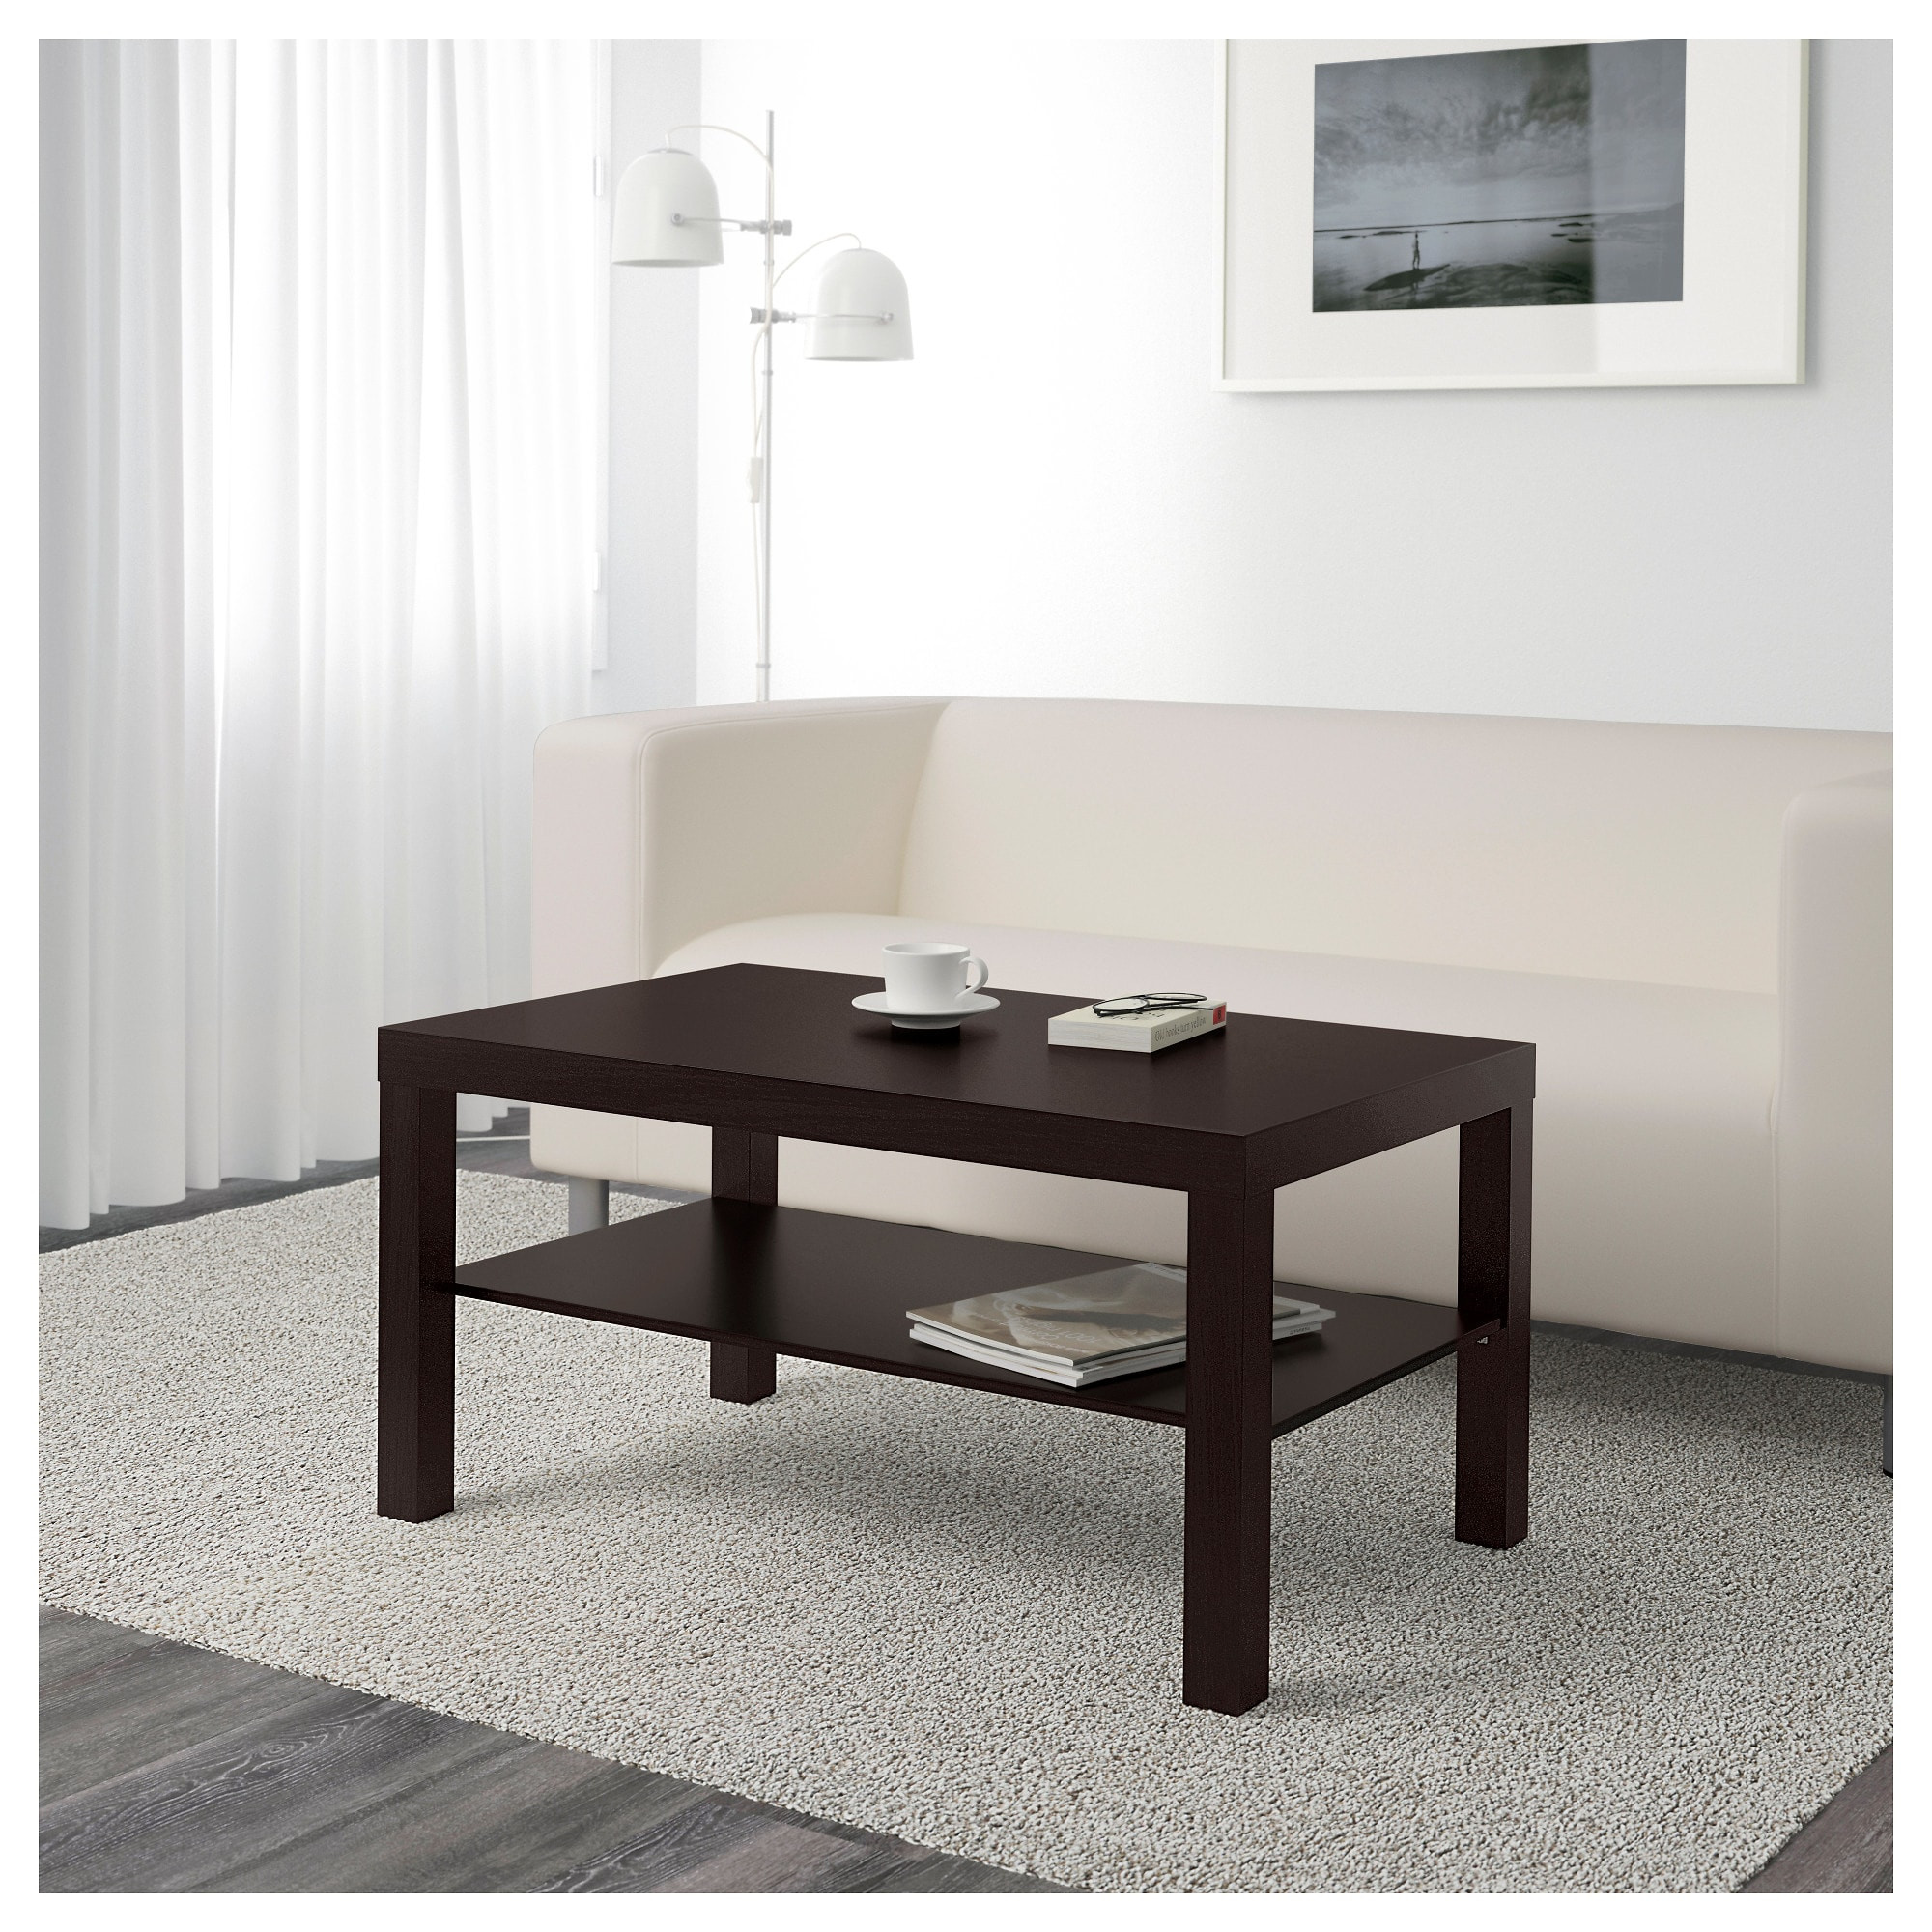 Best ideas about Lack Coffee Table . Save or Pin LACK Coffee table Black brown 90 x 55 cm IKEA Now.